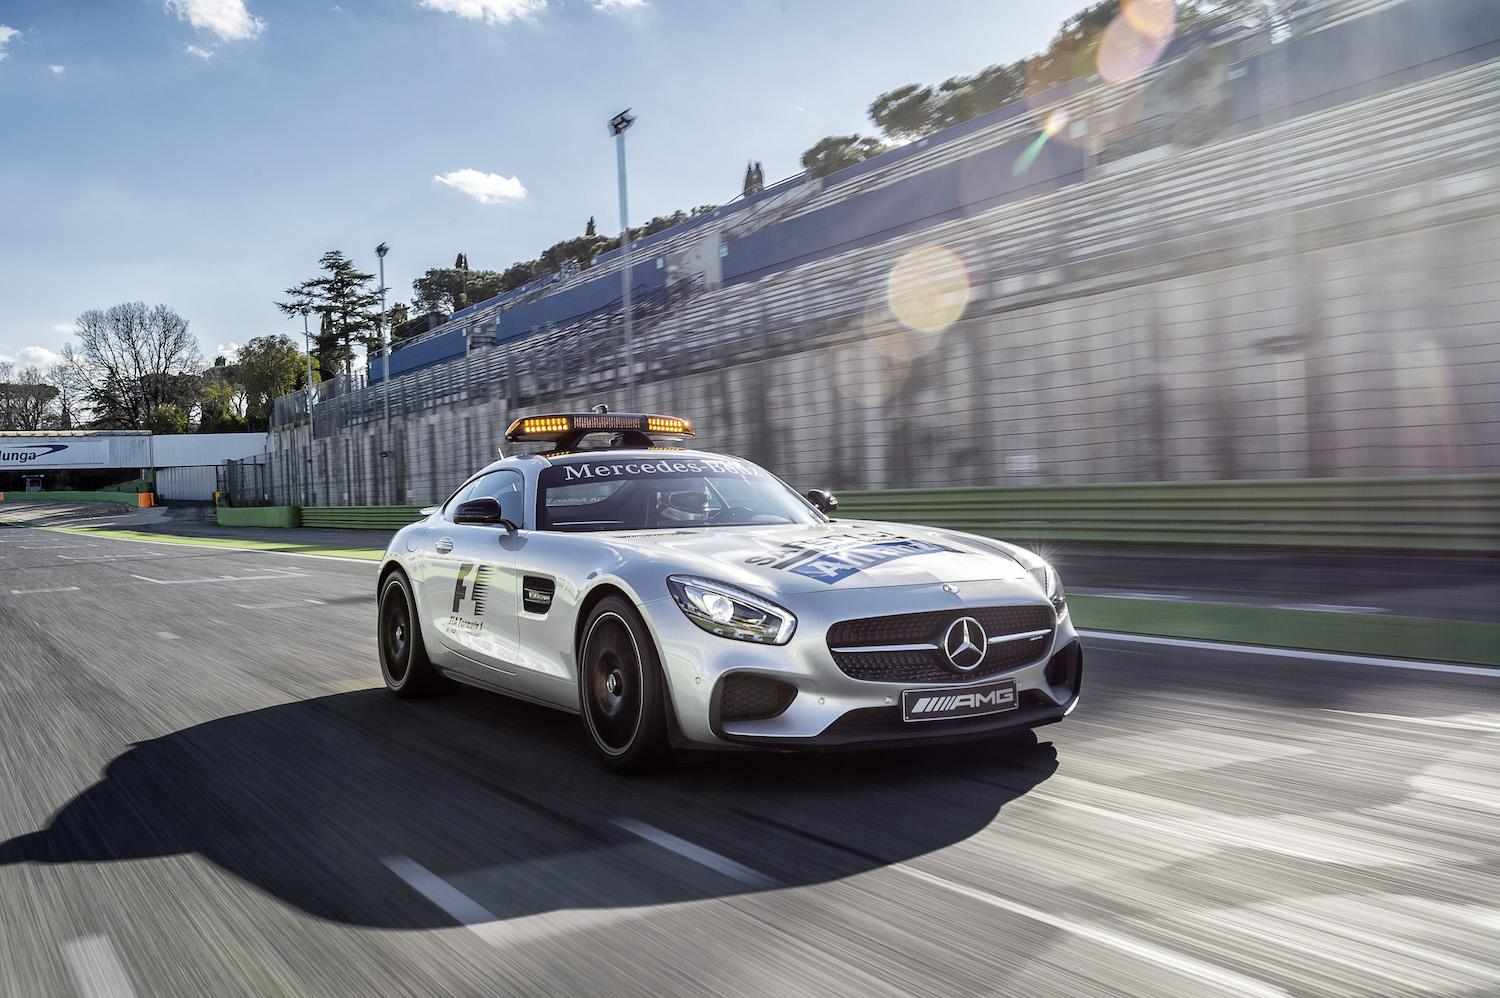 mercedes amg gt s replaces the retiring sls amg as f1 s. Black Bedroom Furniture Sets. Home Design Ideas